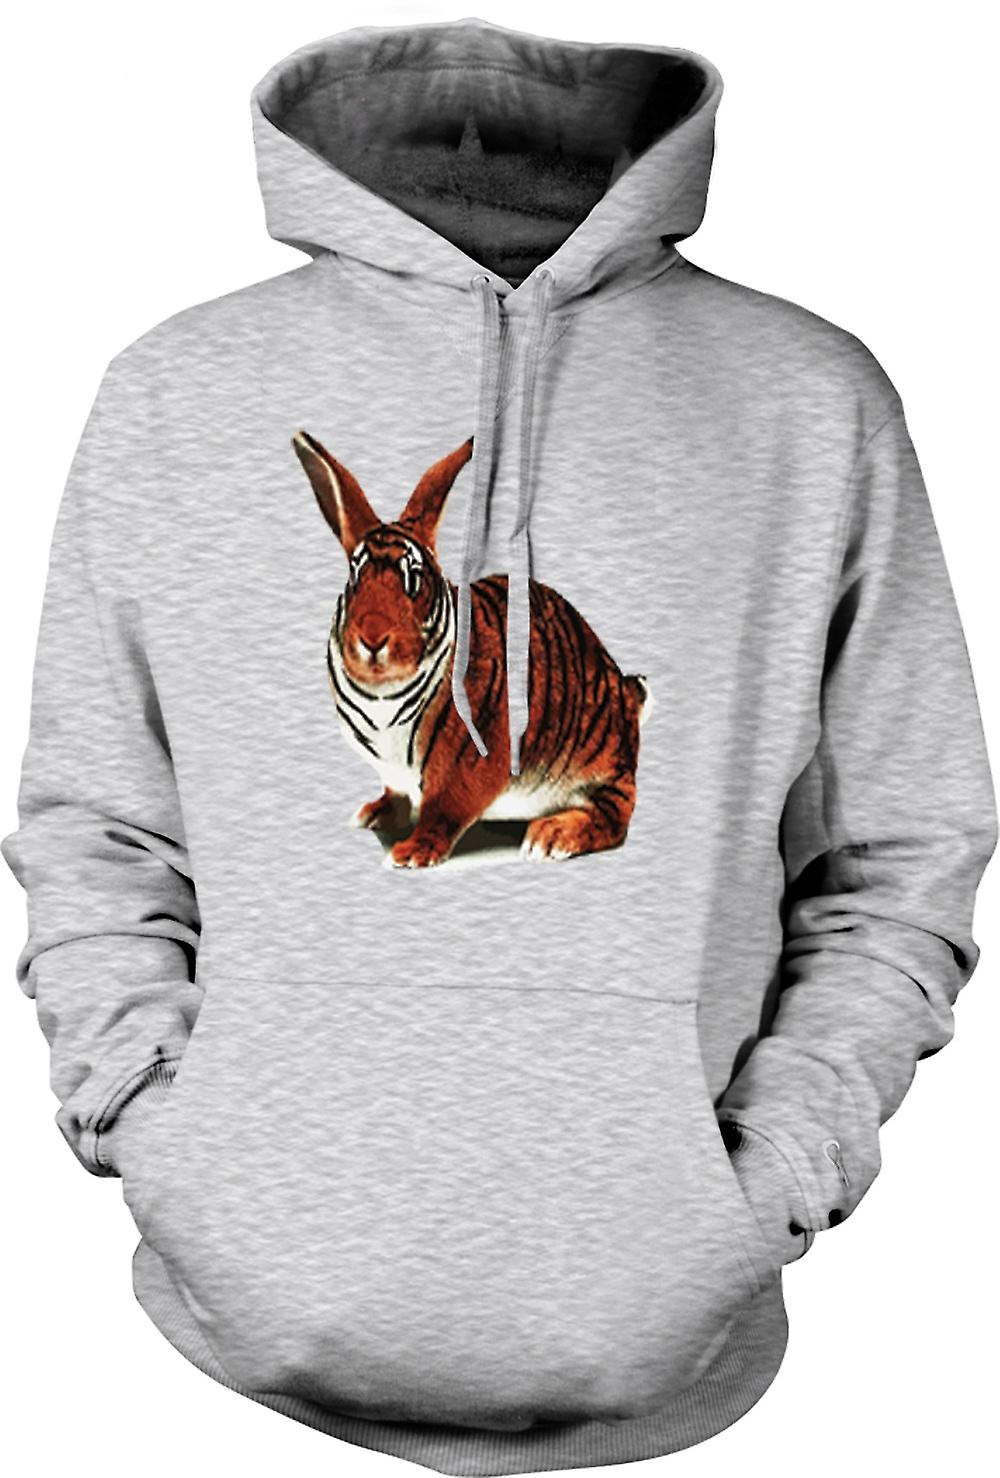 Mens Hoodie - Tiger Rabbit Pop Art Design